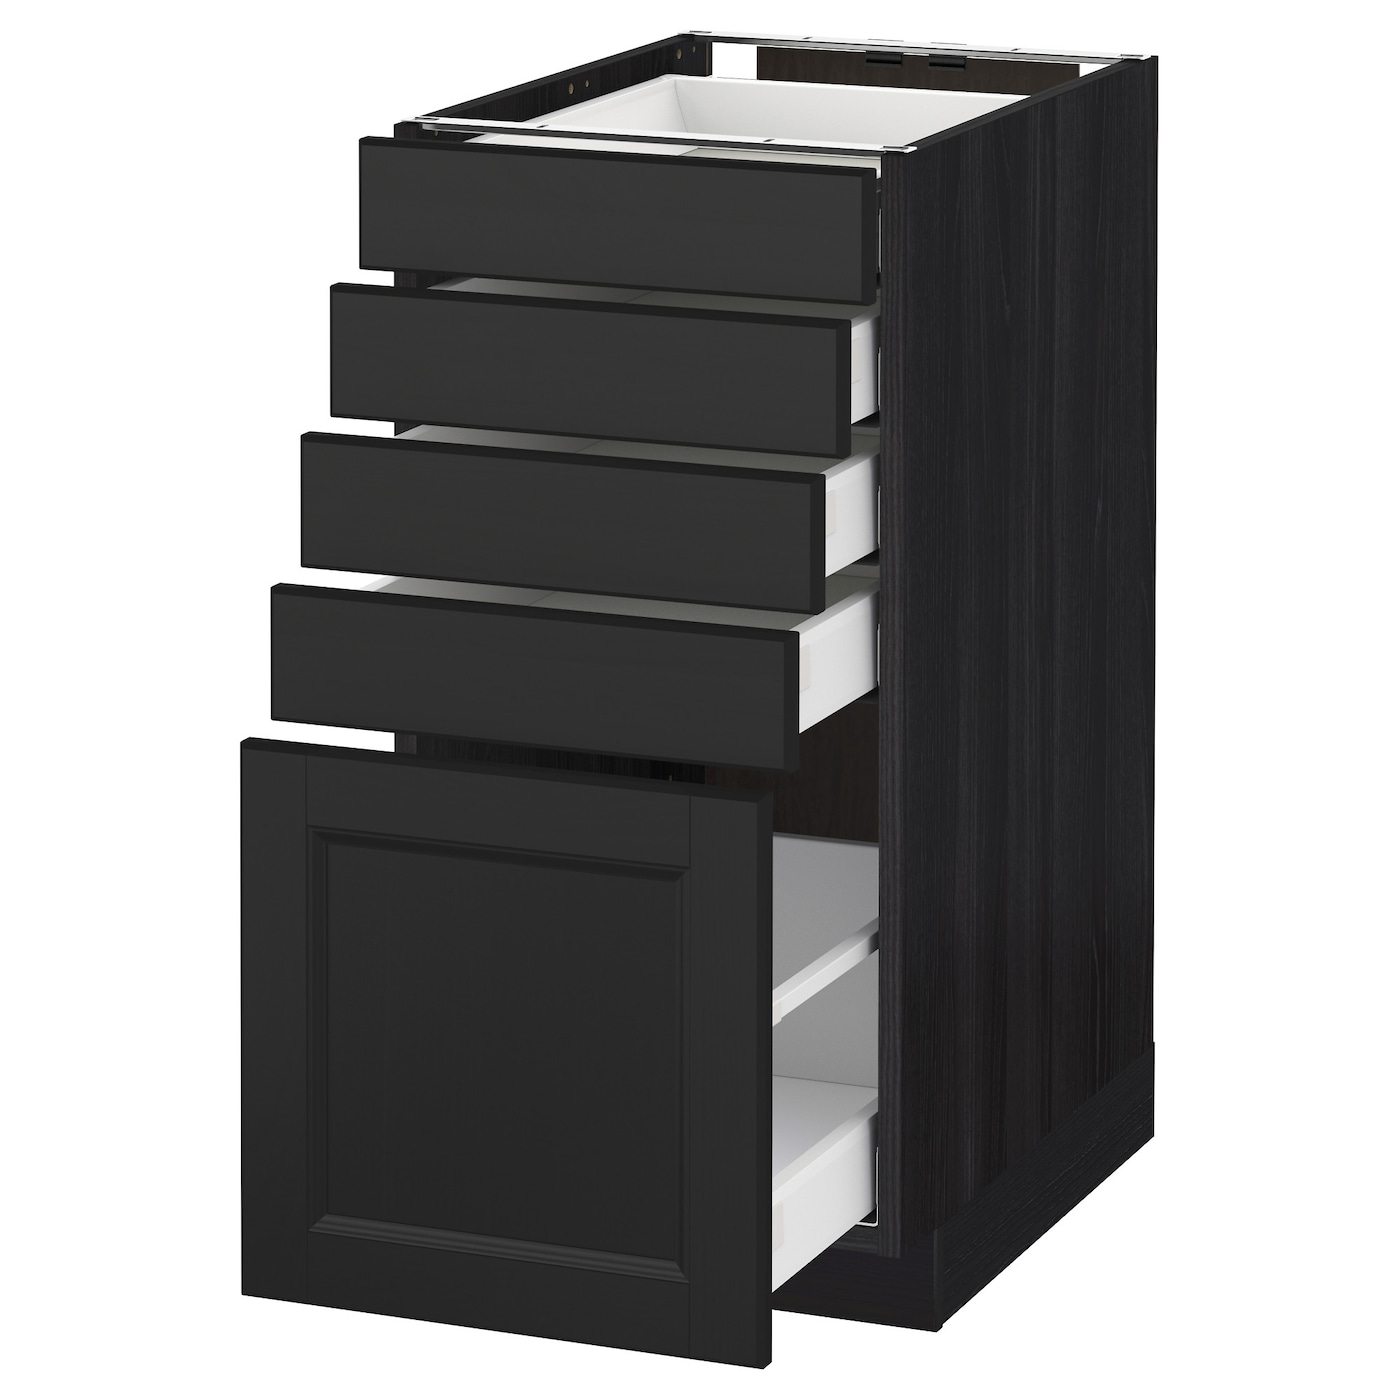 metod maximera base cabinet with 5 drawers black laxarby black brown 40x60 cm ikea. Black Bedroom Furniture Sets. Home Design Ideas